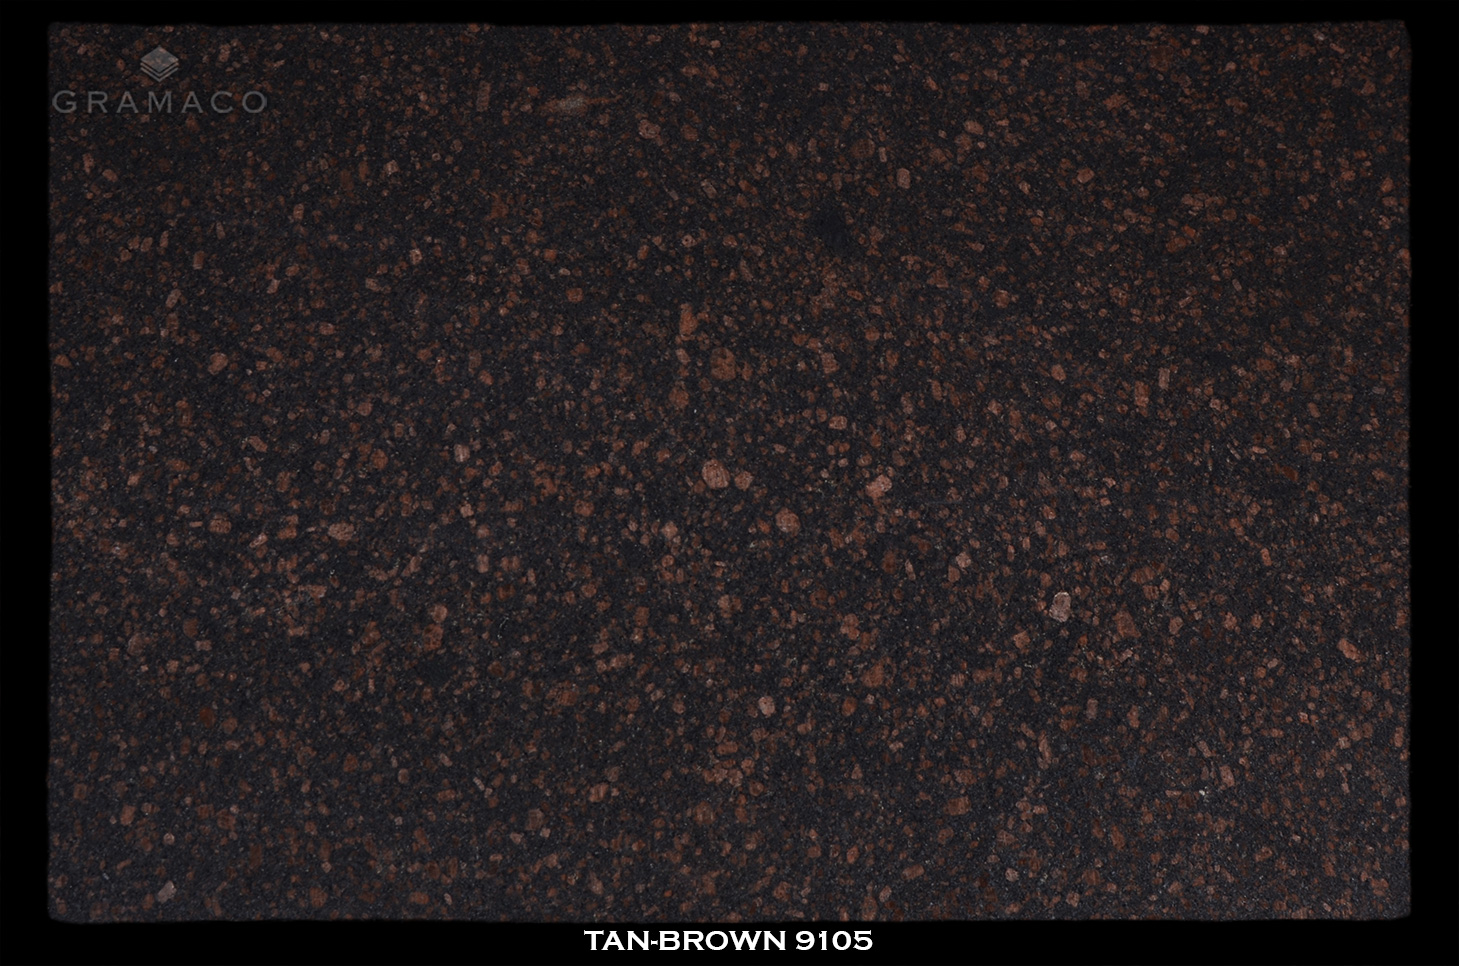 Tan-Brown-9105-slab